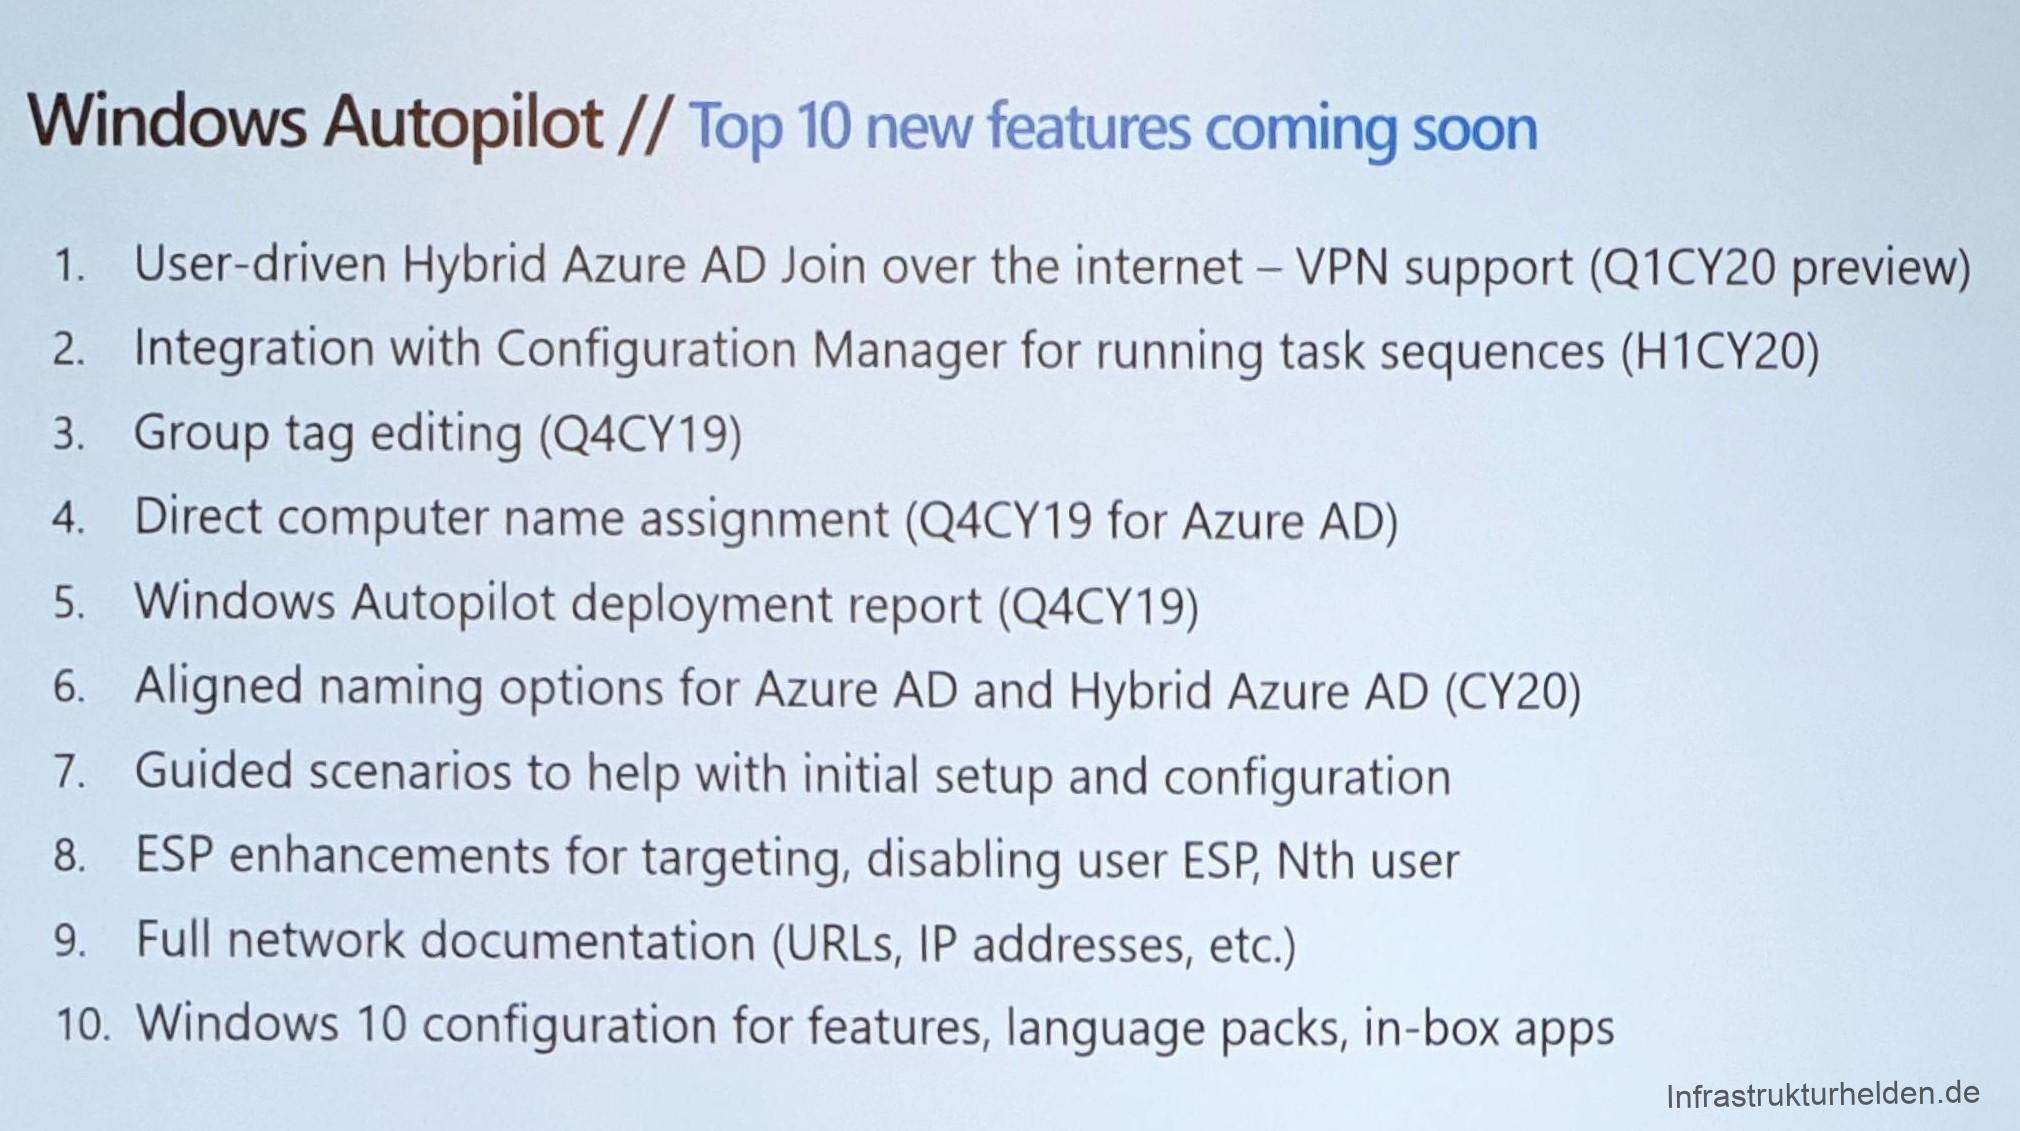 Computergenerierter Alternativtext: Windows Autopilot // Top 10 new features coming soon  1.  2.  3.  4.  5.  6.  7.  8.  9.  10.  User-driven Hybrid Azure AD Join over the internet — VPN support (QI CY20 preview)  Integration With Configuration Manager for running task sequences (Hl CY20)  Group tag editing (Q4CY19)  Direct computer name assignment (Q4CY19 for Azure AD)  Windows Autopilot deployment report (Q4CY19)  Aligned naming options for Azure AD and Hybrid Azure AD (CY20)  Guided scenarios to help With initial setup and configuration  ESP enhancements for targeting, disabling user ESP, Nth user  Full network documentation (URLs, IP addresses, etc.)  Windows 10 configuration for features, language packs, in-box apps